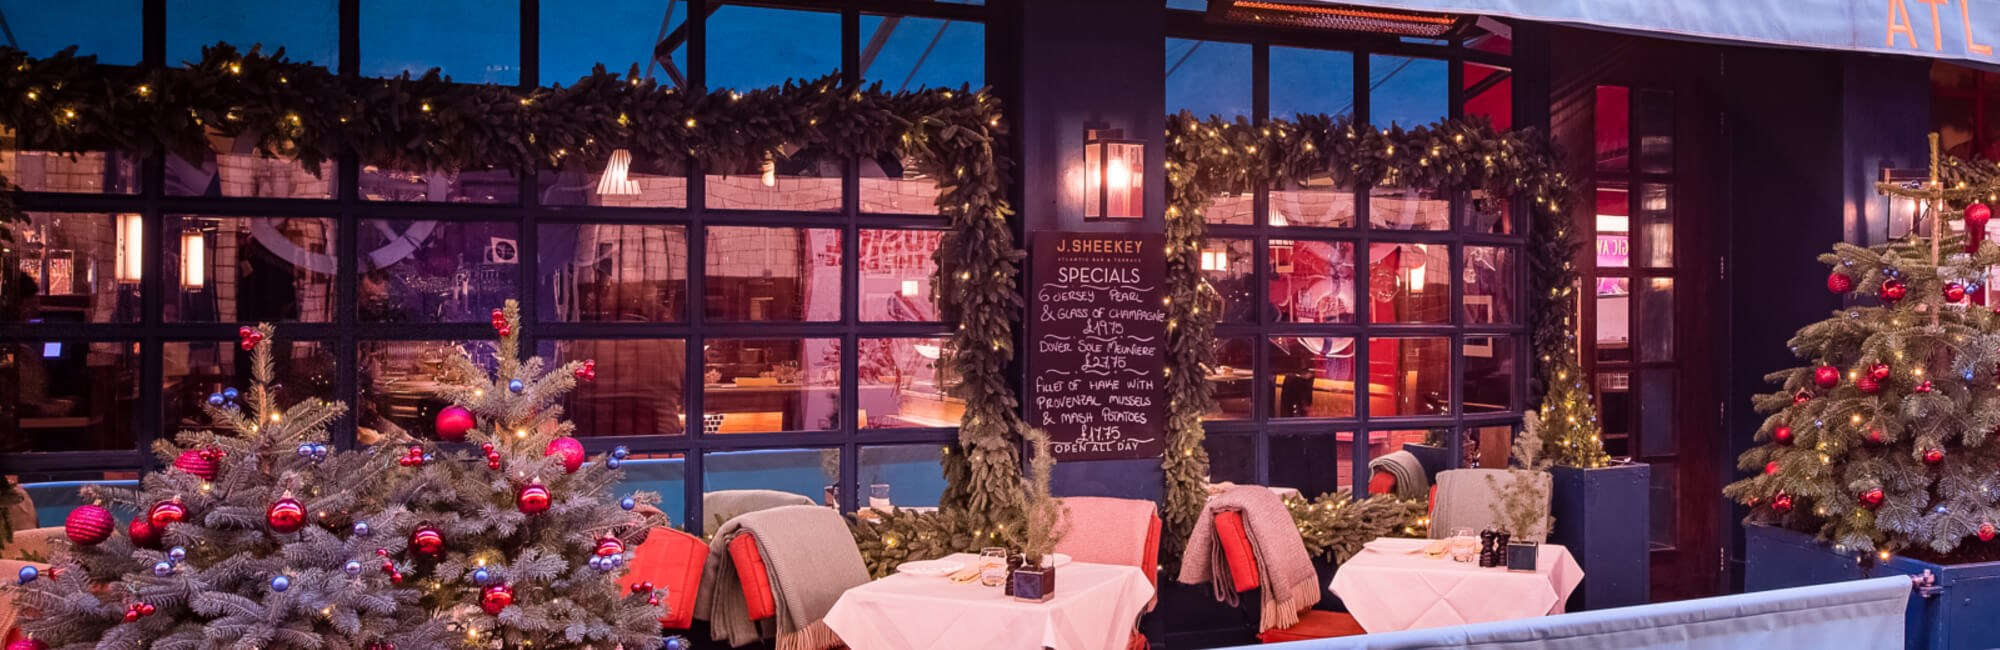 Fish and Seafood Restaurant | J Sheekey Atlantic Bar, London | Christmas